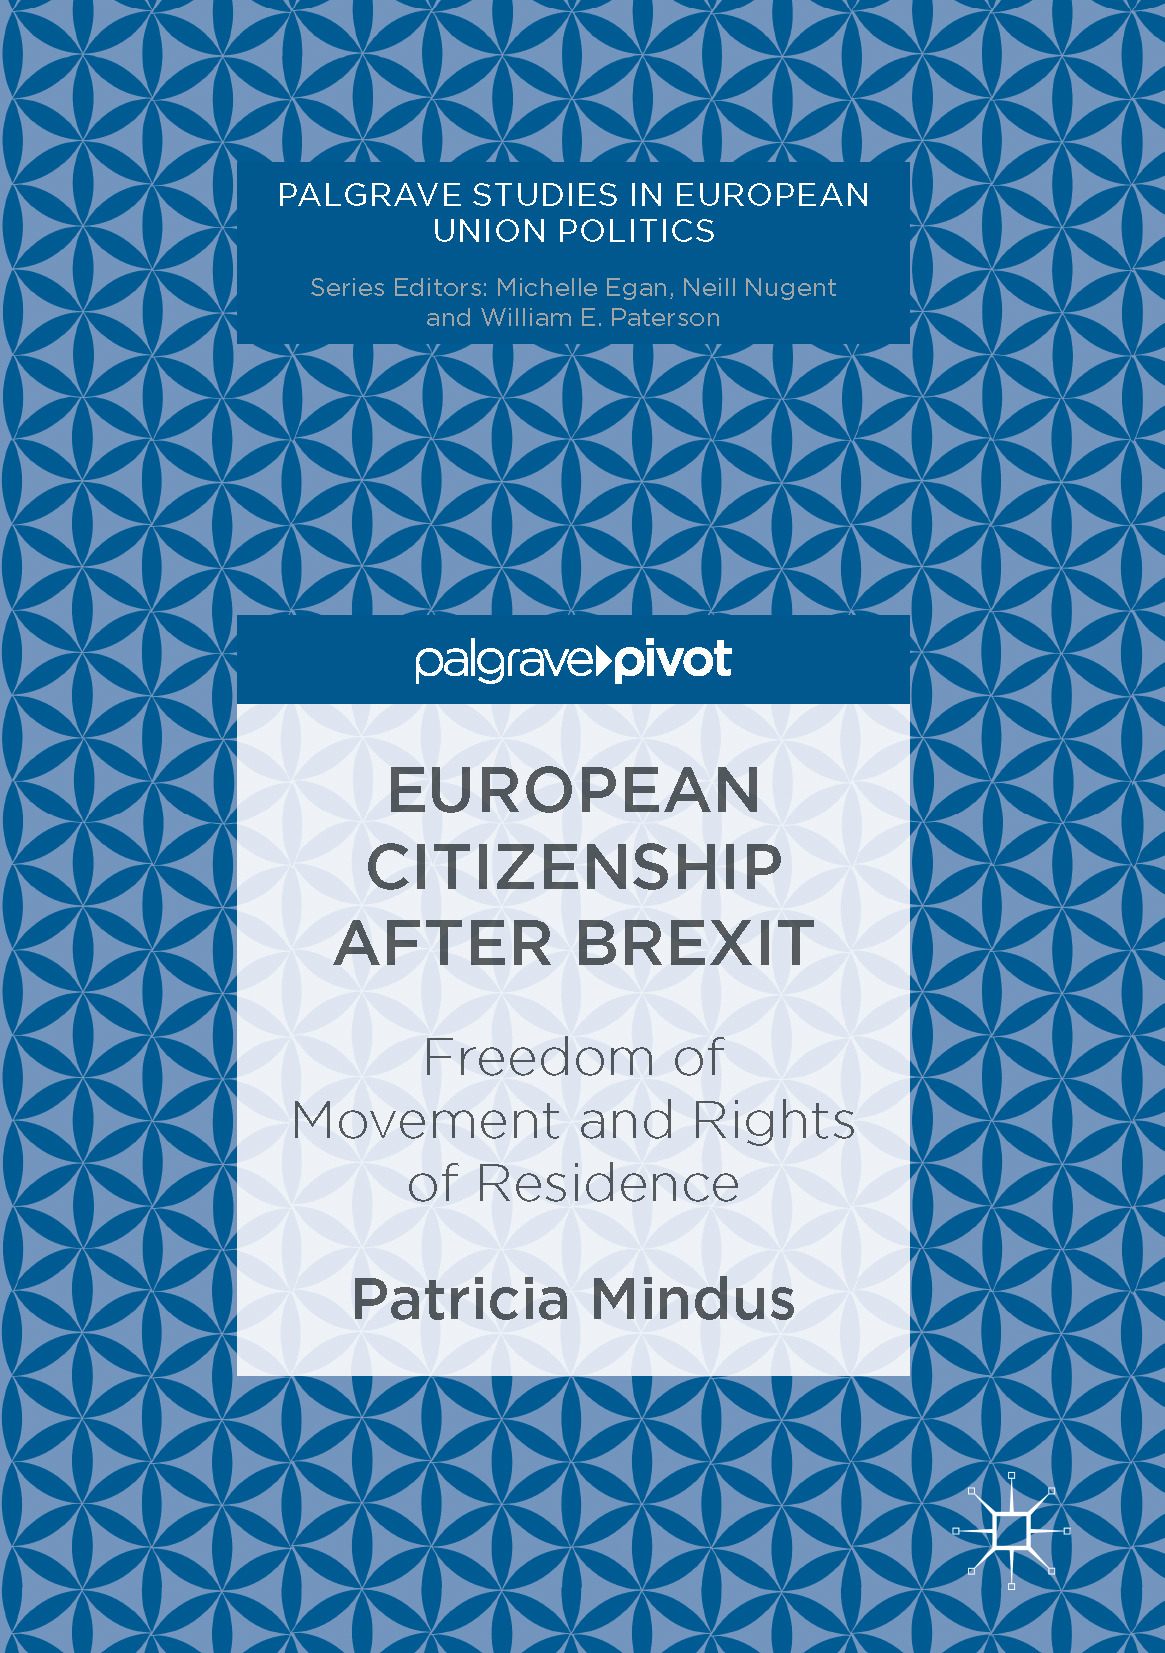 Mindus, Patricia - European Citizenship after Brexit, ebook